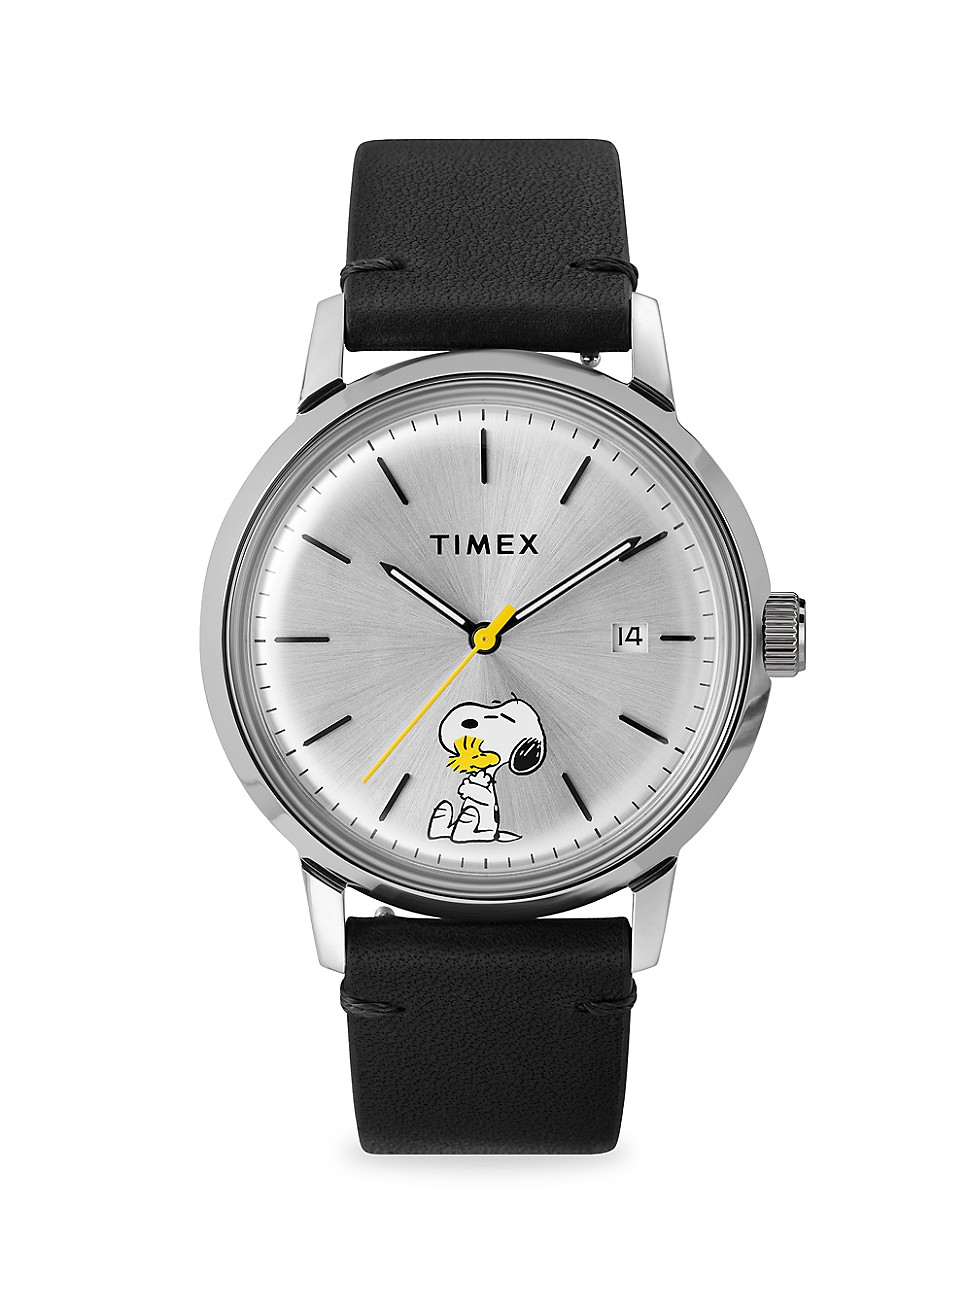 TIMEX MARLIN AUTOMATIC TYPING SNOOPY & WOODSTOCK 40MM LEATHER STRAP WATCH